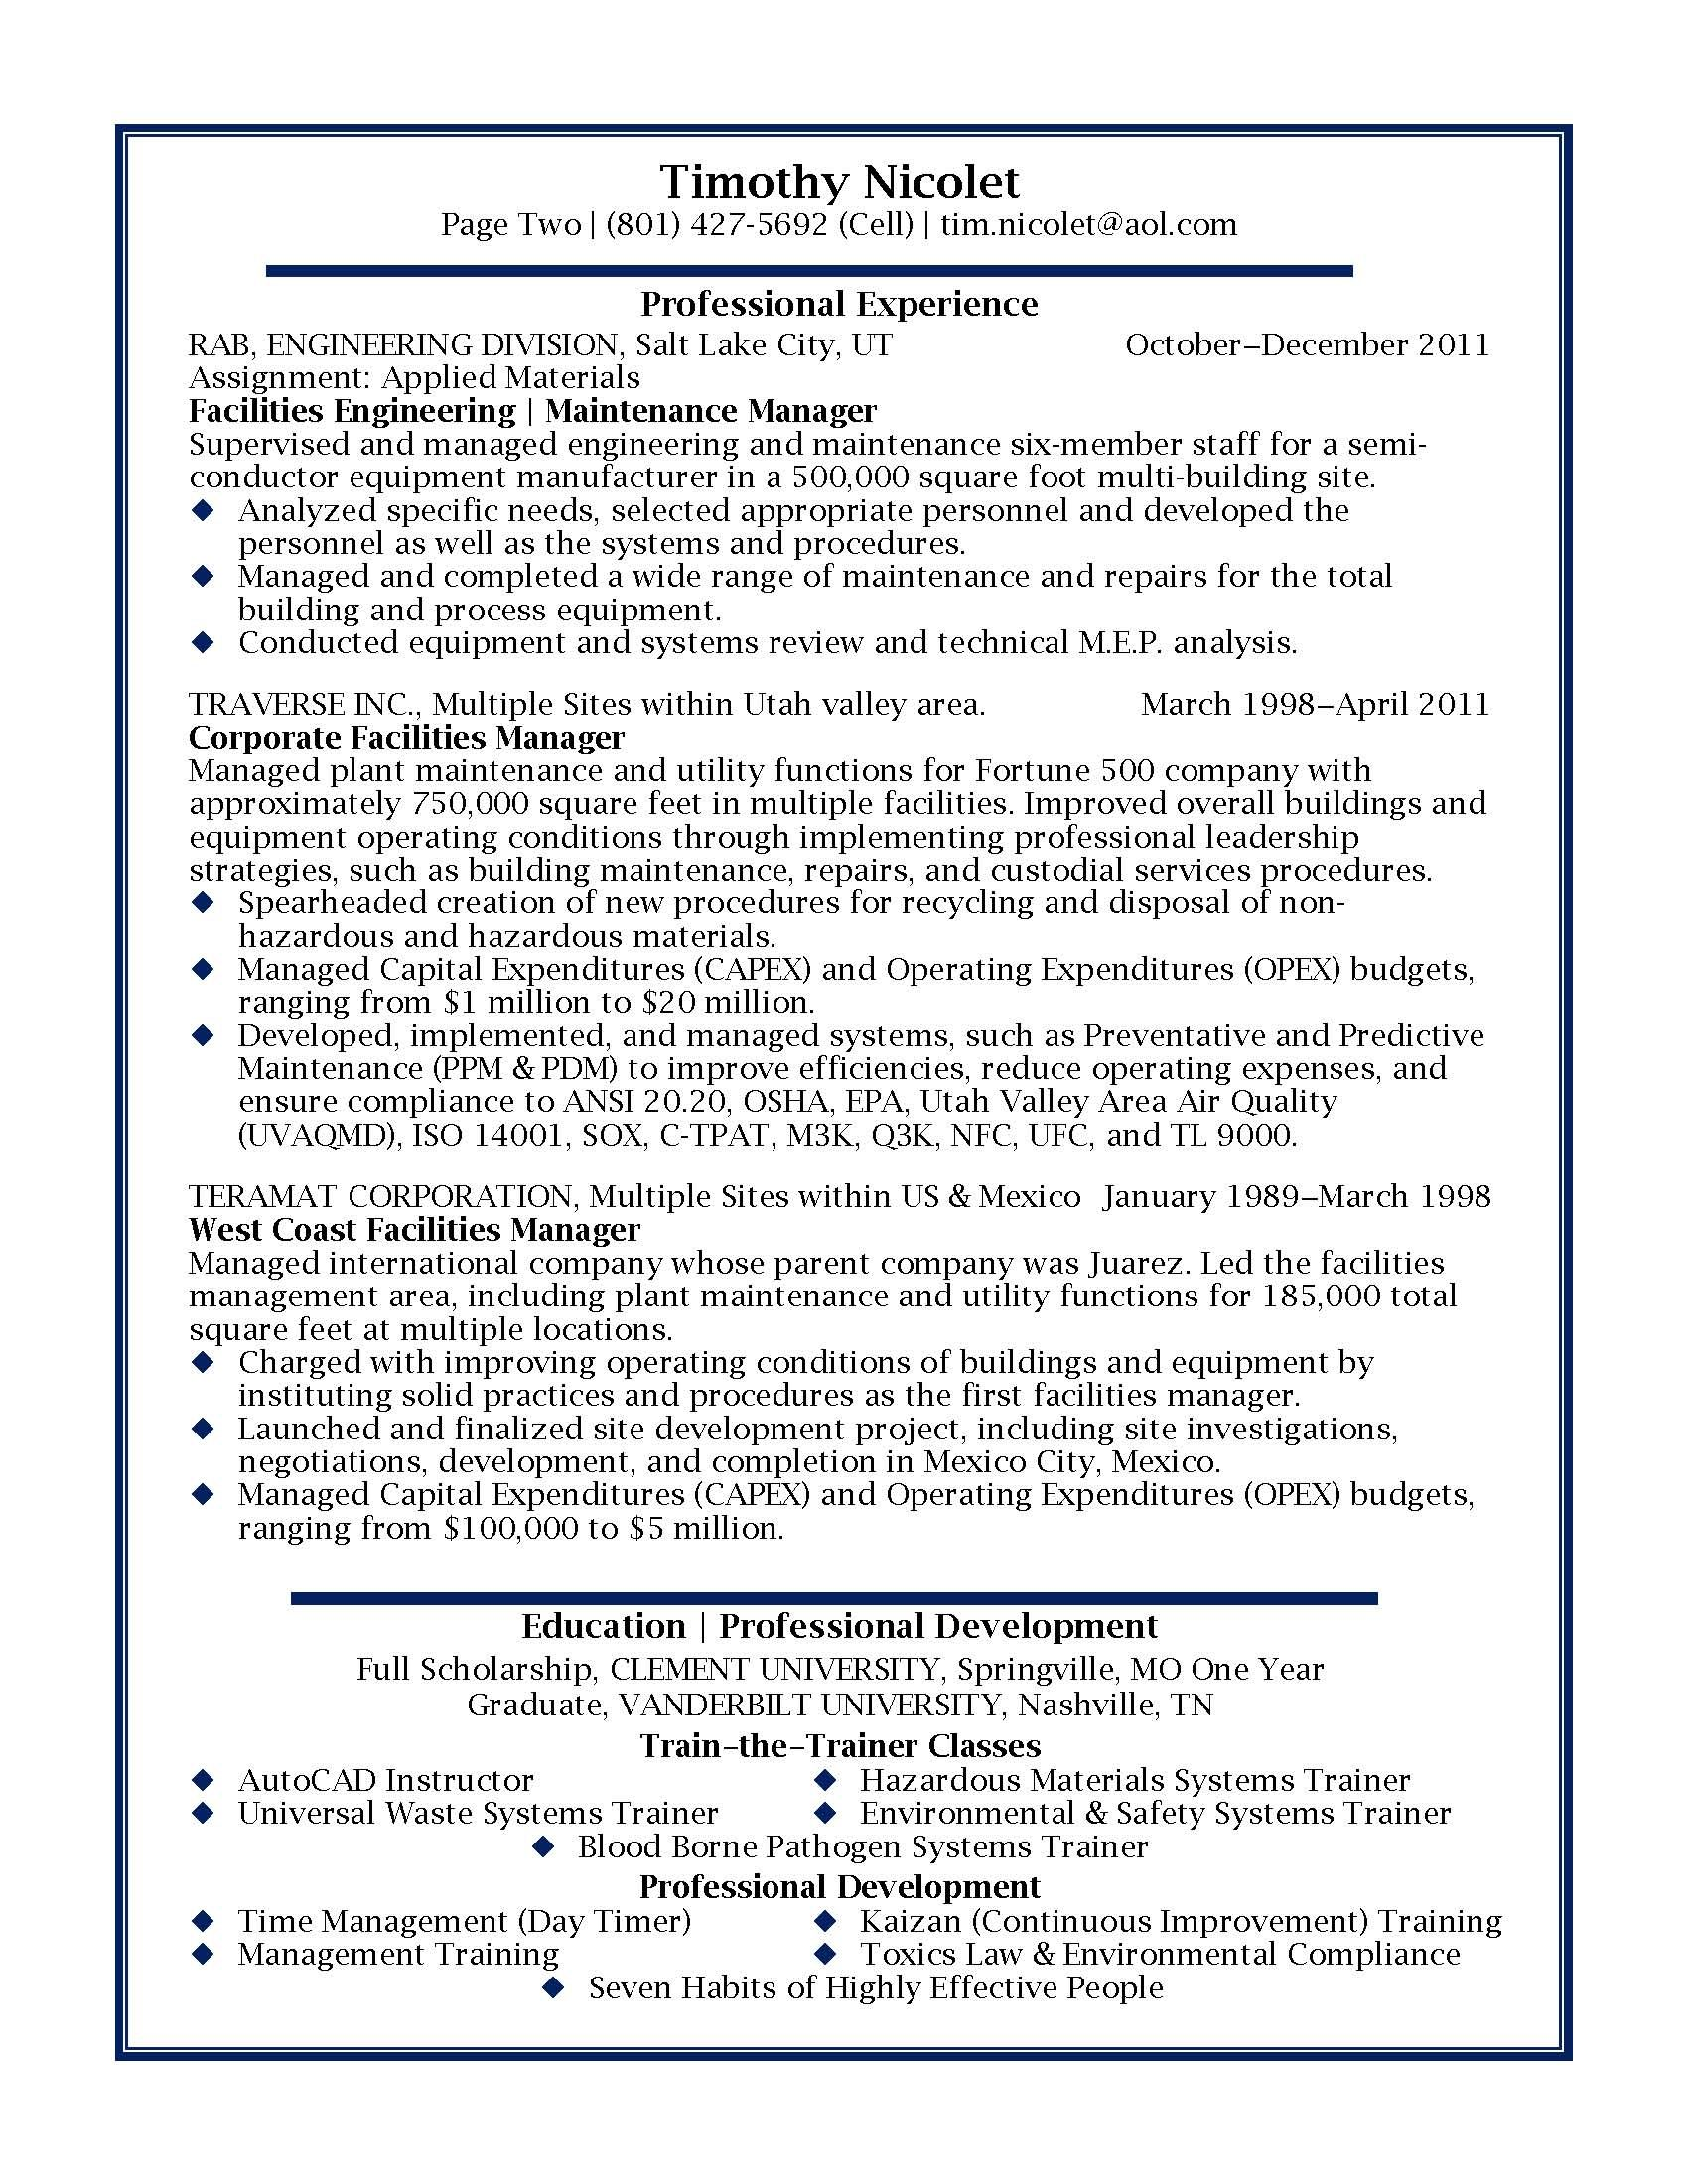 Professional Examples Of Resumes Facilities Manager Professional Resume Sample Design